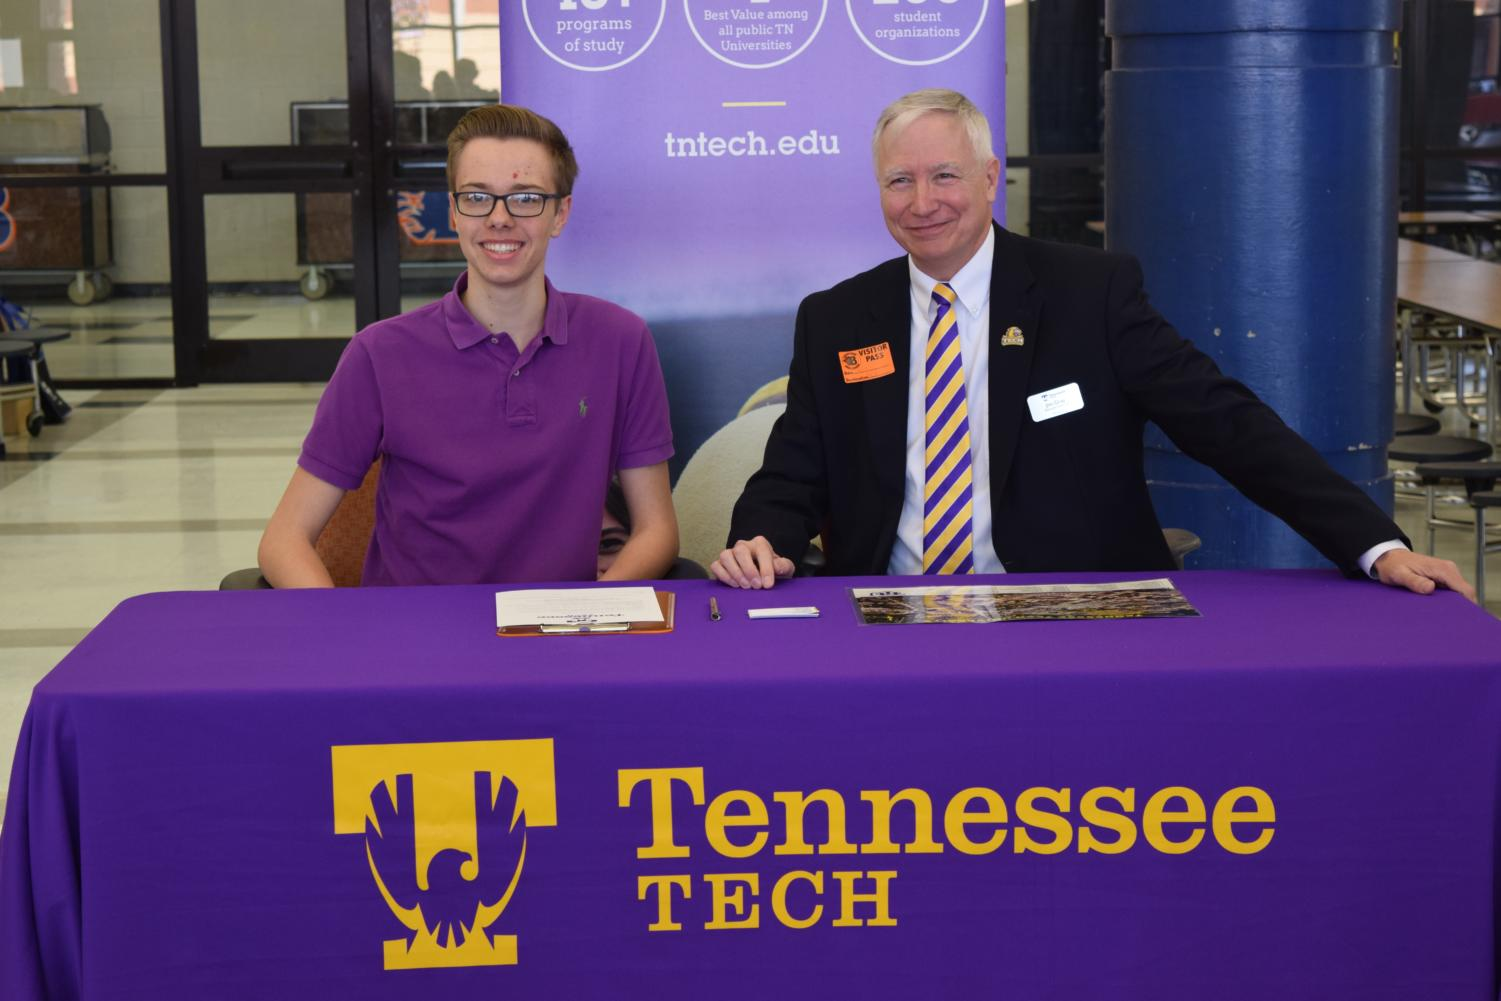 Ryan+Heath+will+attend+Tennessee+Tech+University+in+the+fall.